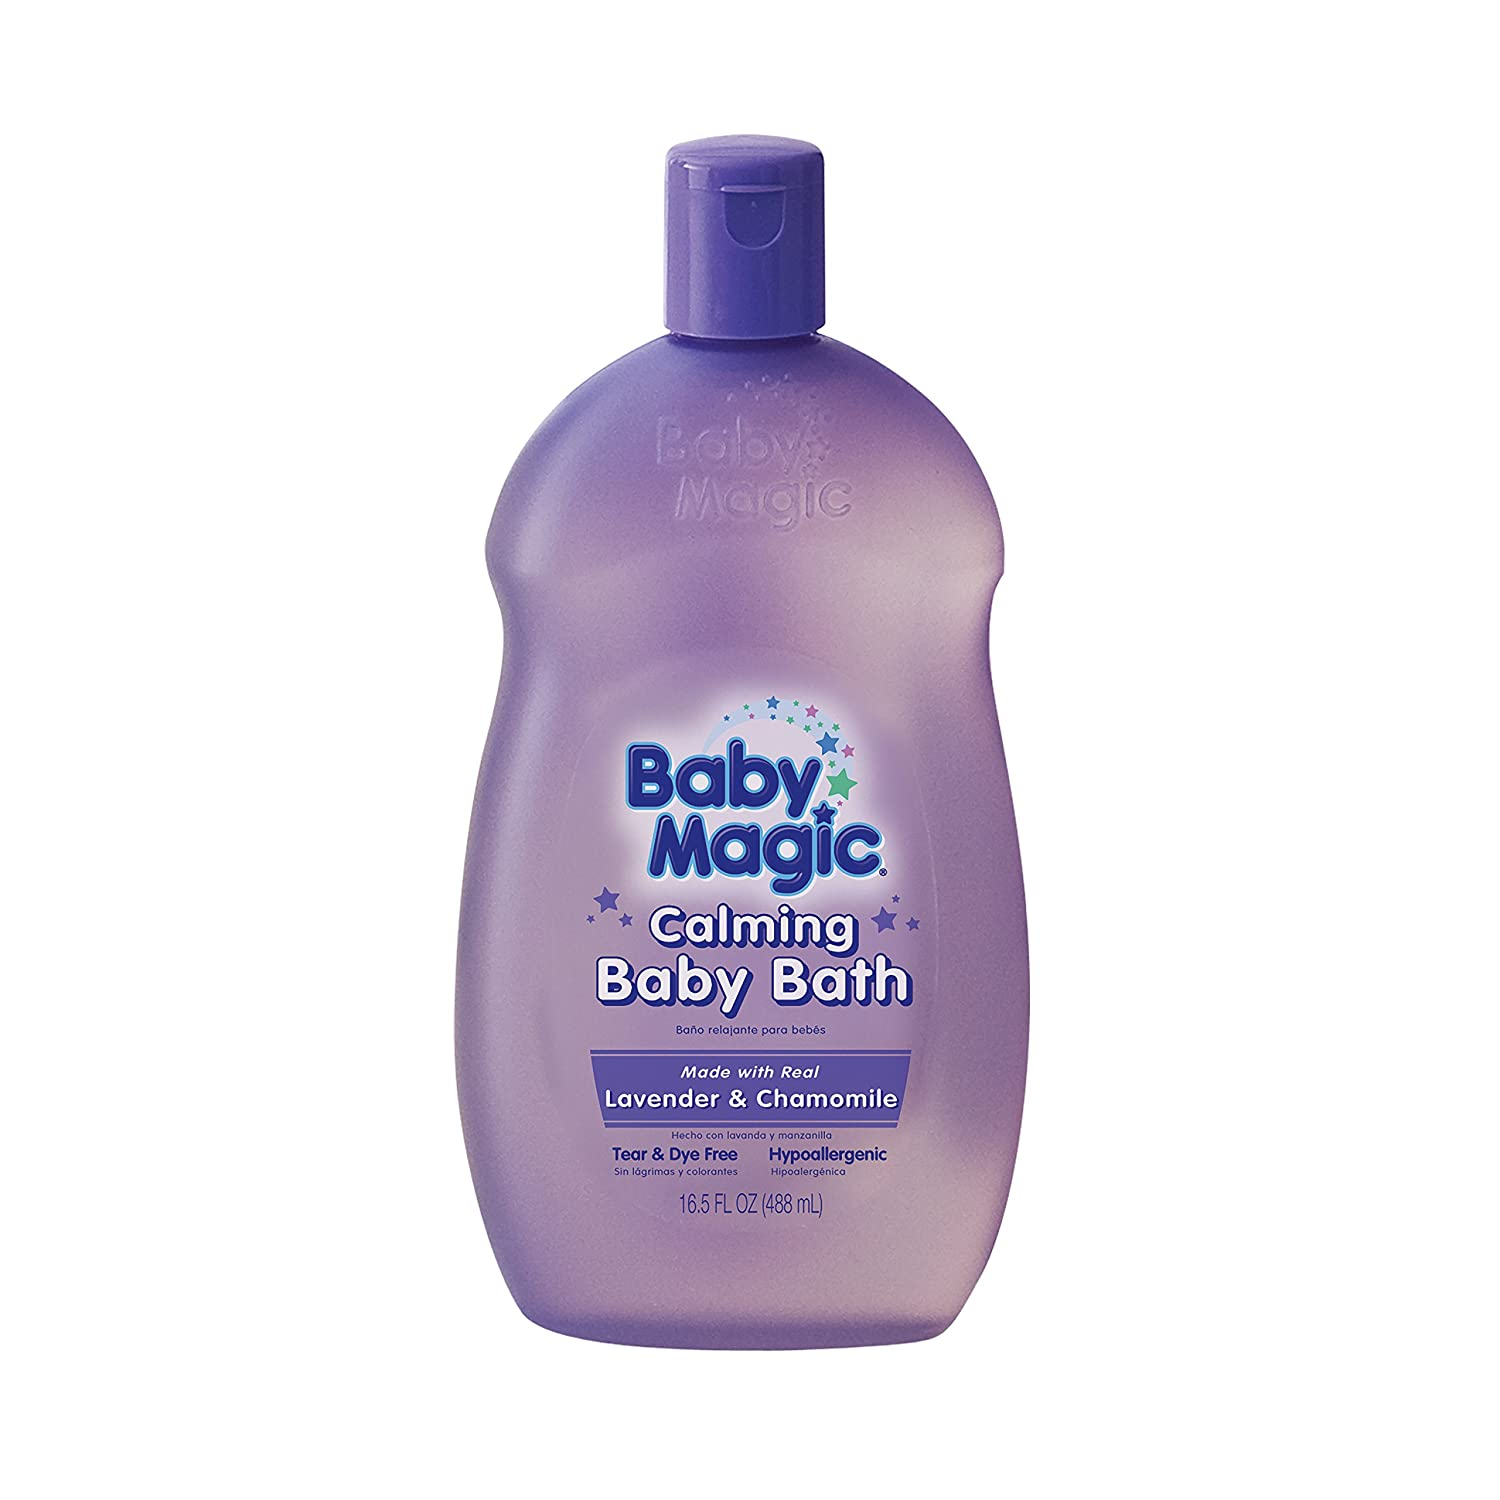 Baby Magic Calming Baby Bath, Lavender and Chamomile, 16.5 Ounces (Pack of 6) 705011